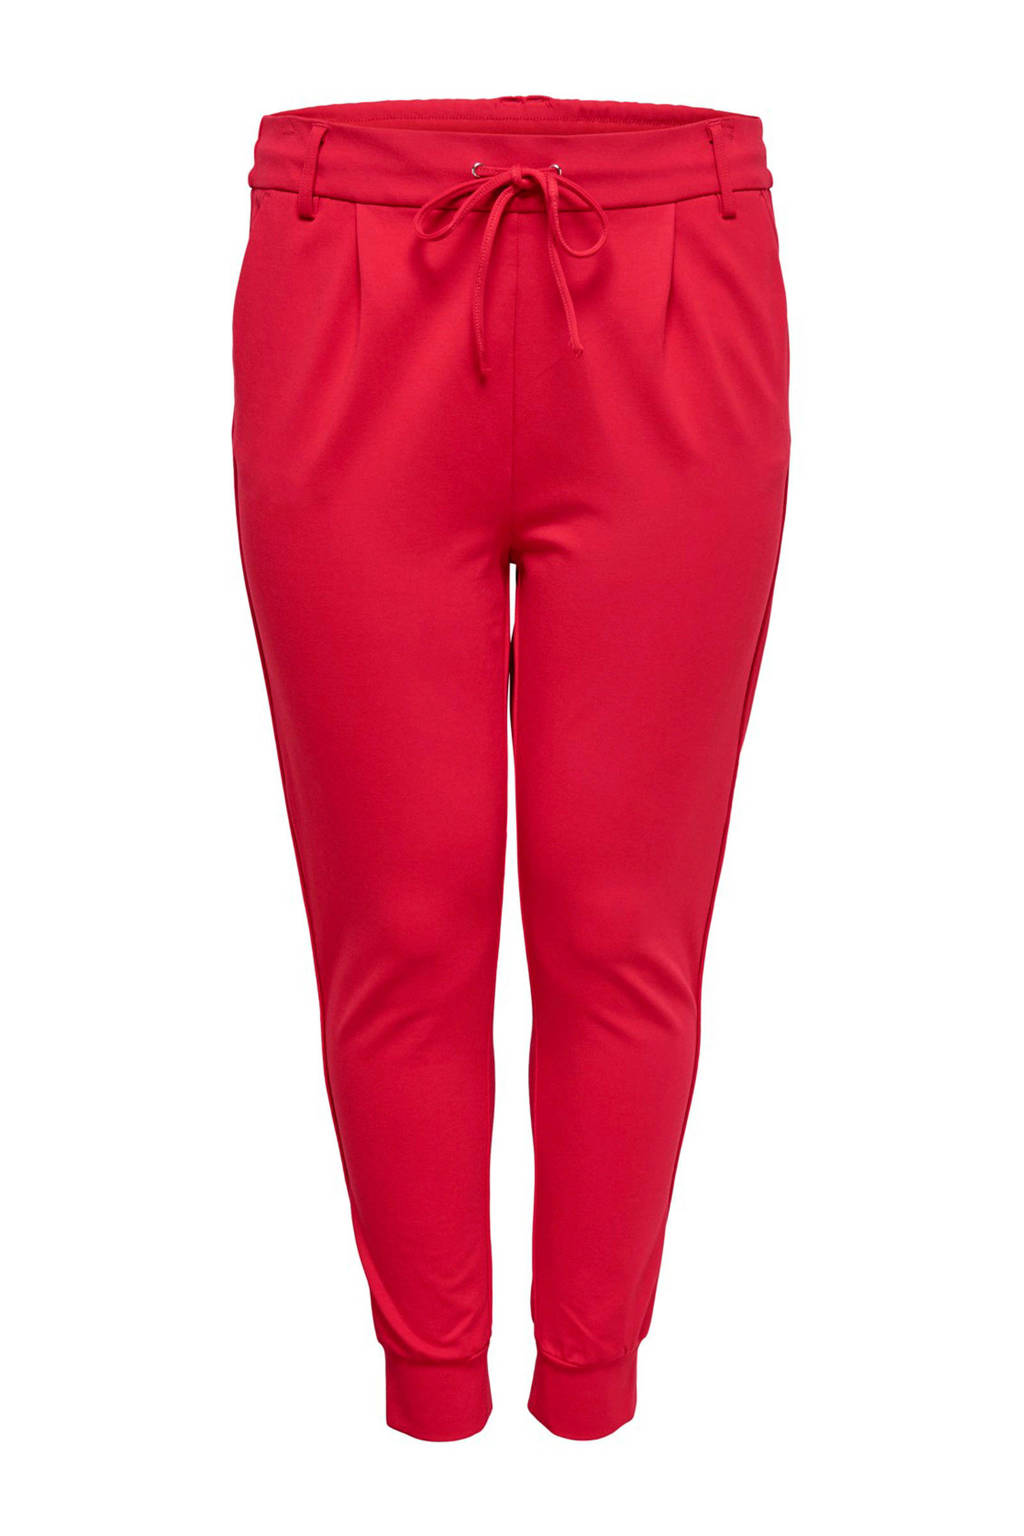 ONLY carmakoma sweatpants rood, Rood